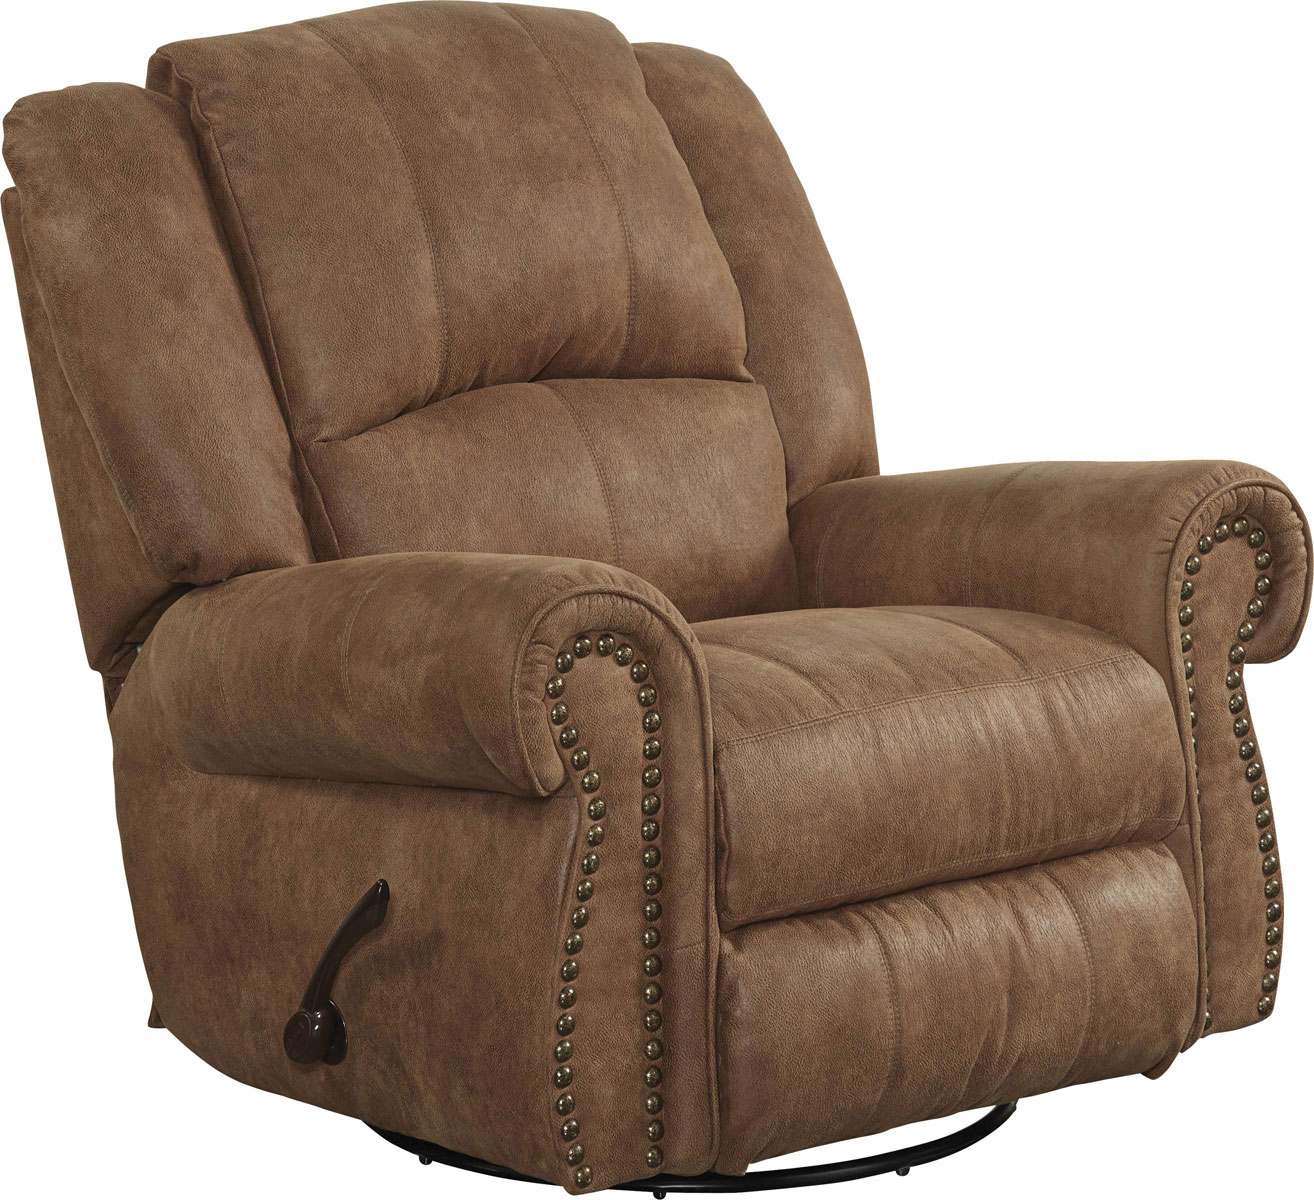 CatNapper Westin Power Glider Recliner - Nutmeg